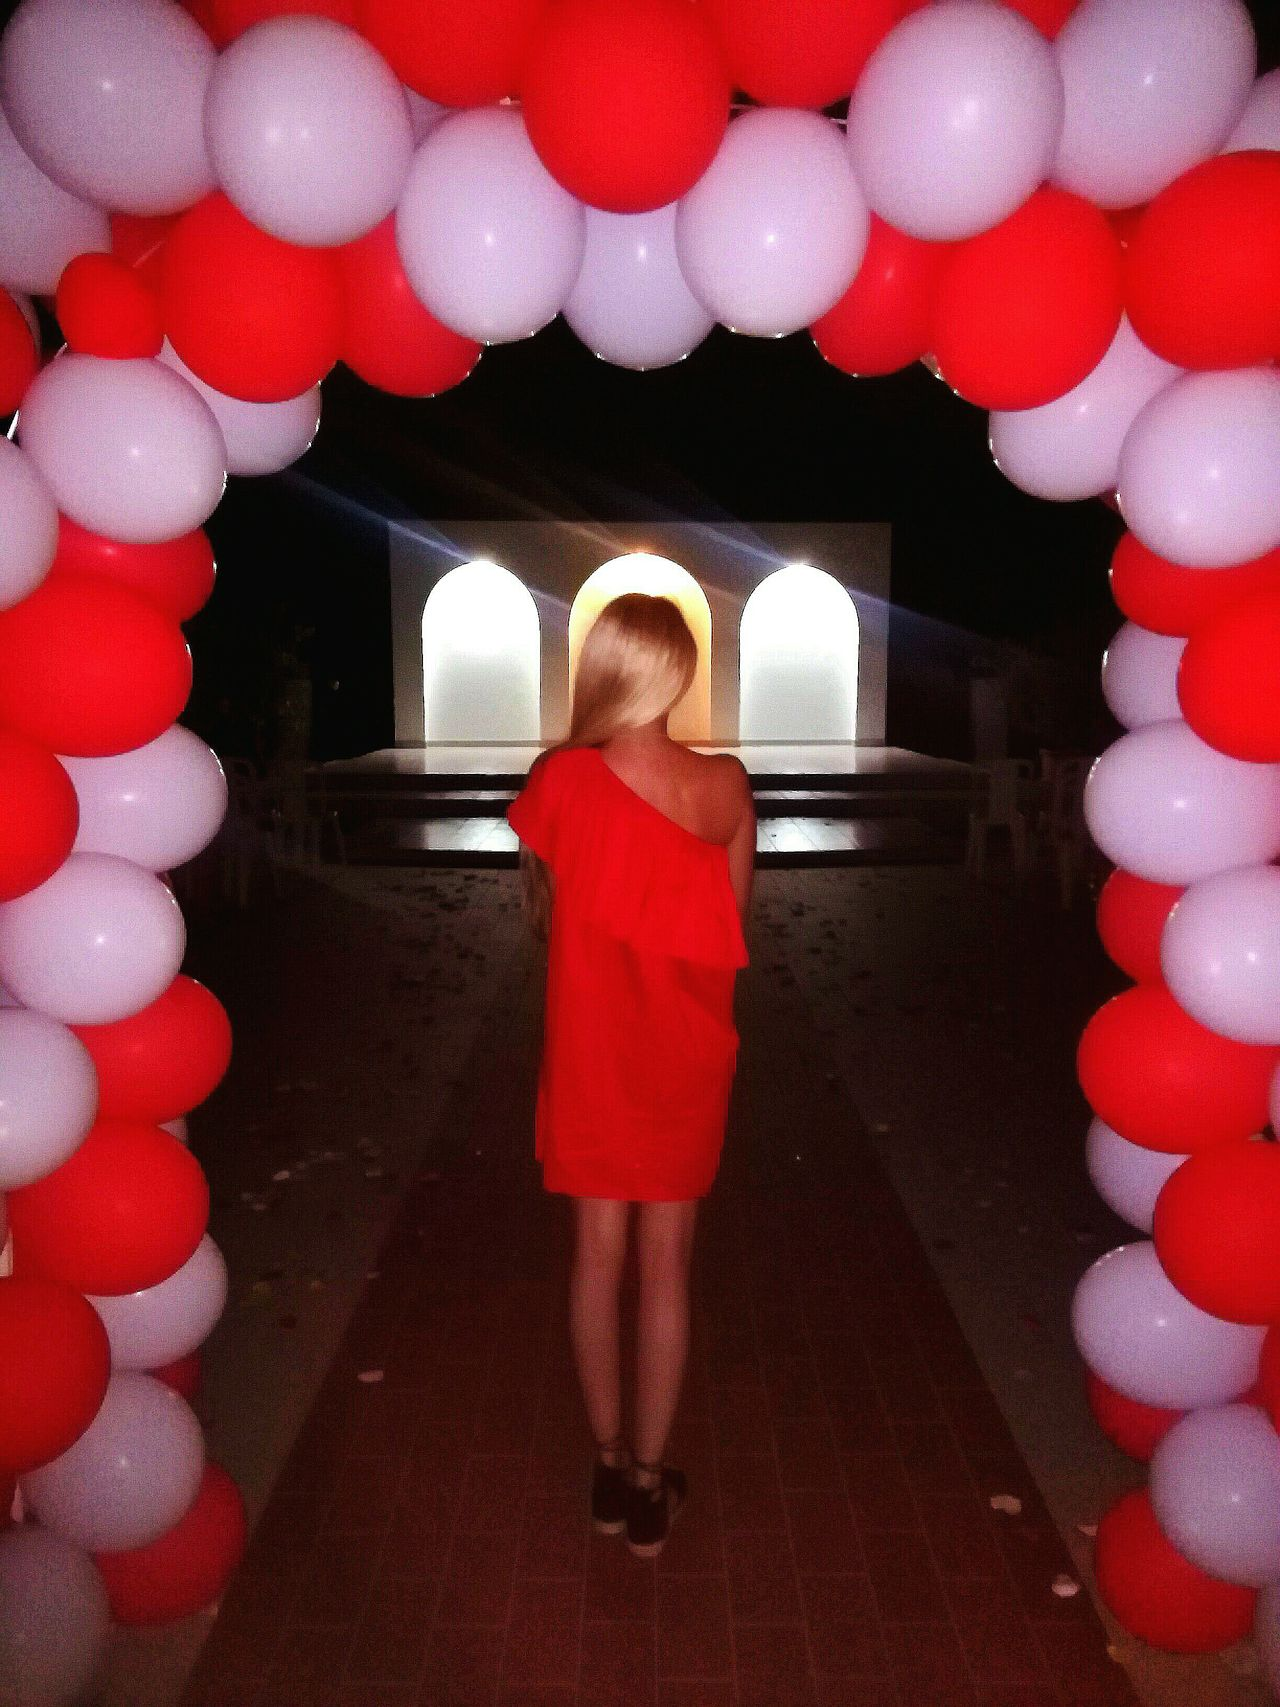 Wedding Weddingphotography Nightphotography Todayphotography Enjoying Life Balloons Red White Pleasefollowme Thisway Myway Eyeemcollection EyeEmbestshots Hungariangirl From My Point Of View